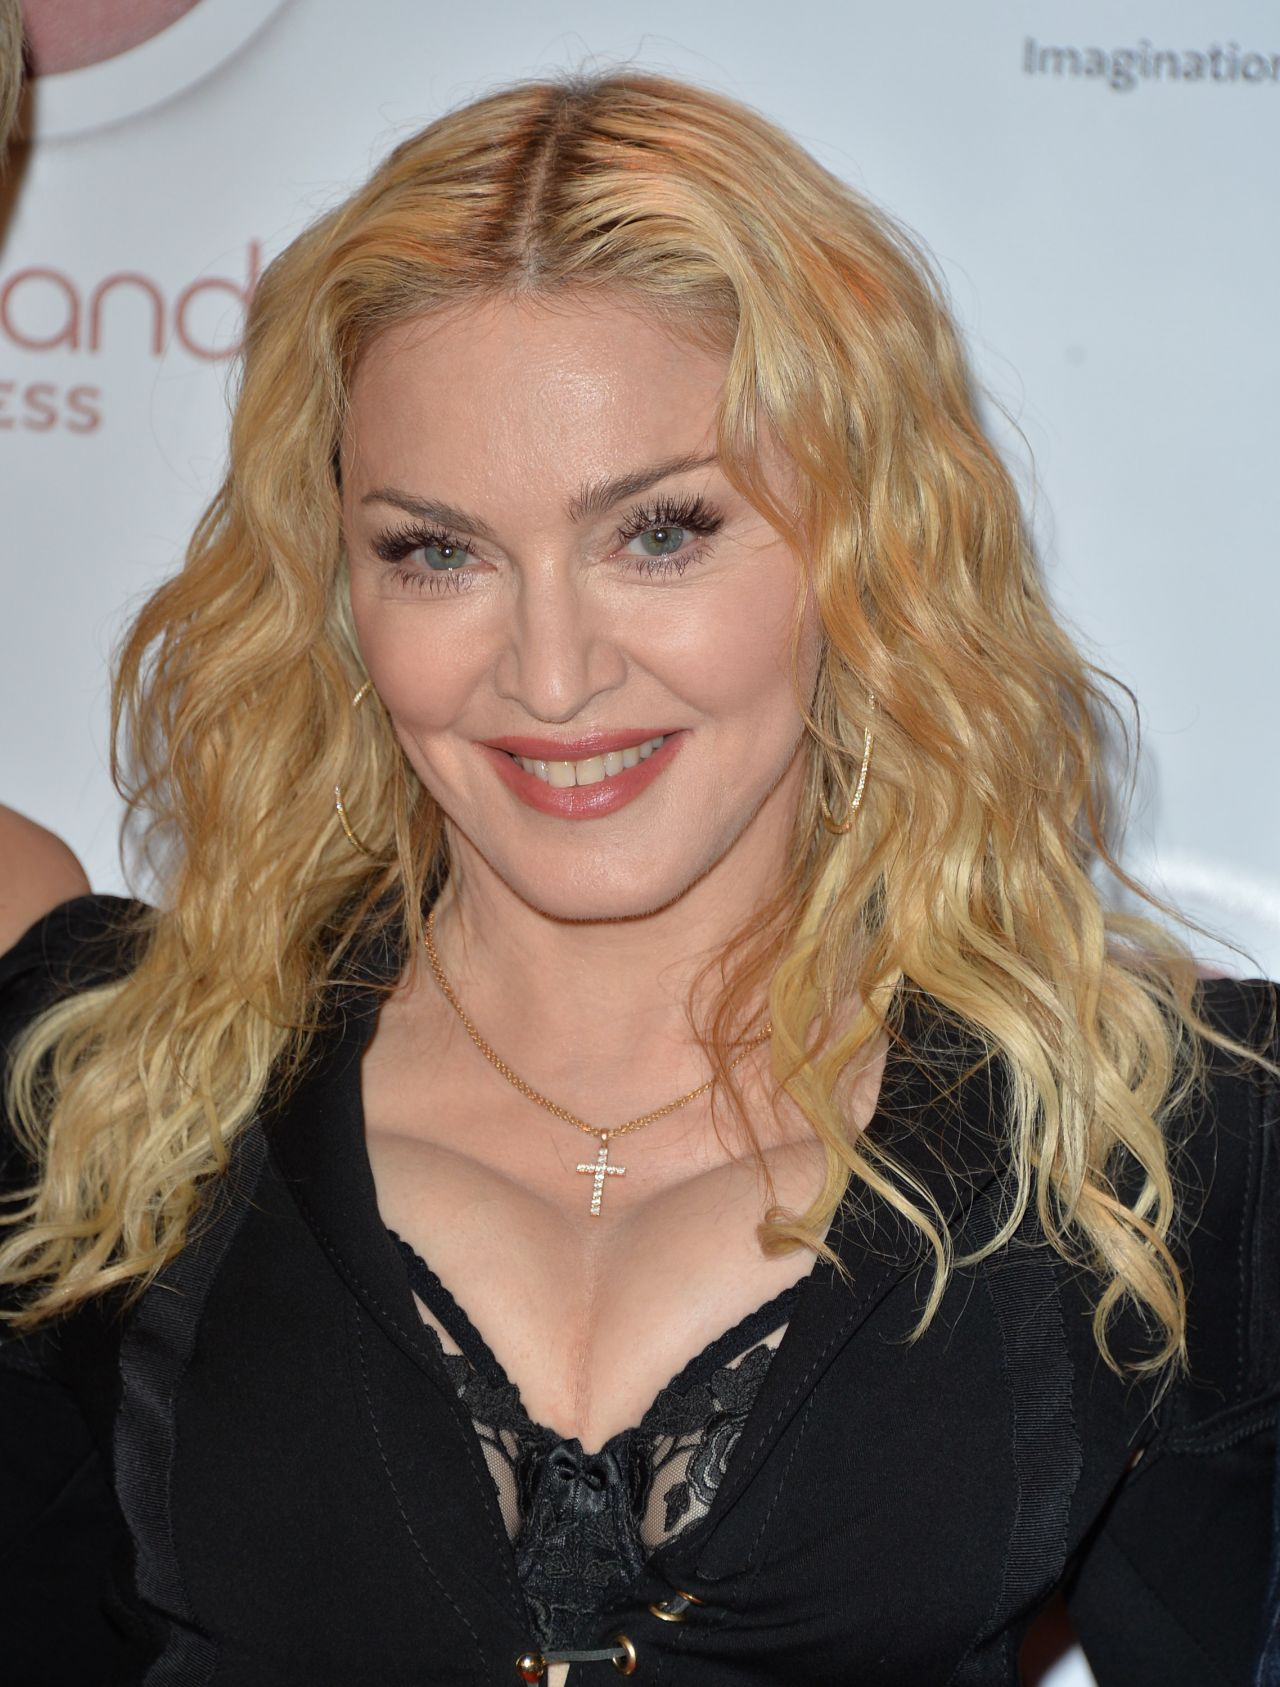 madonna-hard-candy-fitness-toronto-grand-opening-celebration-in-canada-february-2014_3